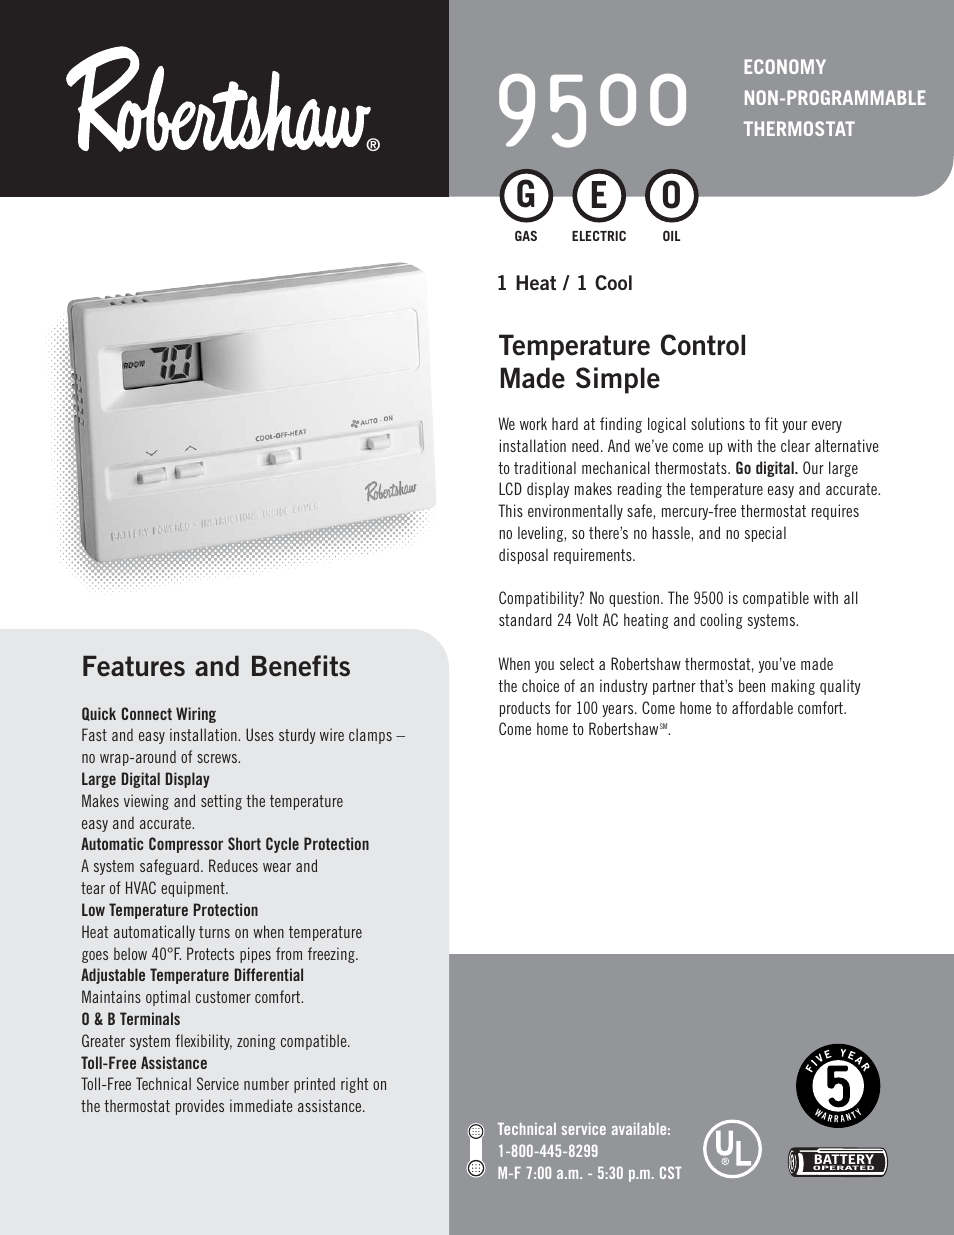 robertshaw-9500-page1 Robertshaw Digital Thermostat Wiring Diagram on commercial defrost timer wiring diagram, robertshaw 9620 thermostat wiring layout, watts thermostat wiring diagram, york thermostat wiring diagram, luxaire thermostat wiring diagram, trane thermostat wiring diagram, suntouch thermostat wiring diagram, wards thermostat wiring diagram, frigidaire thermostat wiring diagram, electric baseboard heater thermostat wiring diagram, honeywell thermostat wiring diagram, split system heat pump wiring diagram, ecobee thermostat wiring diagram, fedders thermostat wiring diagram, portable heater wiring diagram, comfortmaker thermostat wiring diagram, emerson thermostat wiring diagram, programmable thermostat wiring diagram, johnson controls thermostat wiring diagram, coleman thermostat wiring diagram,